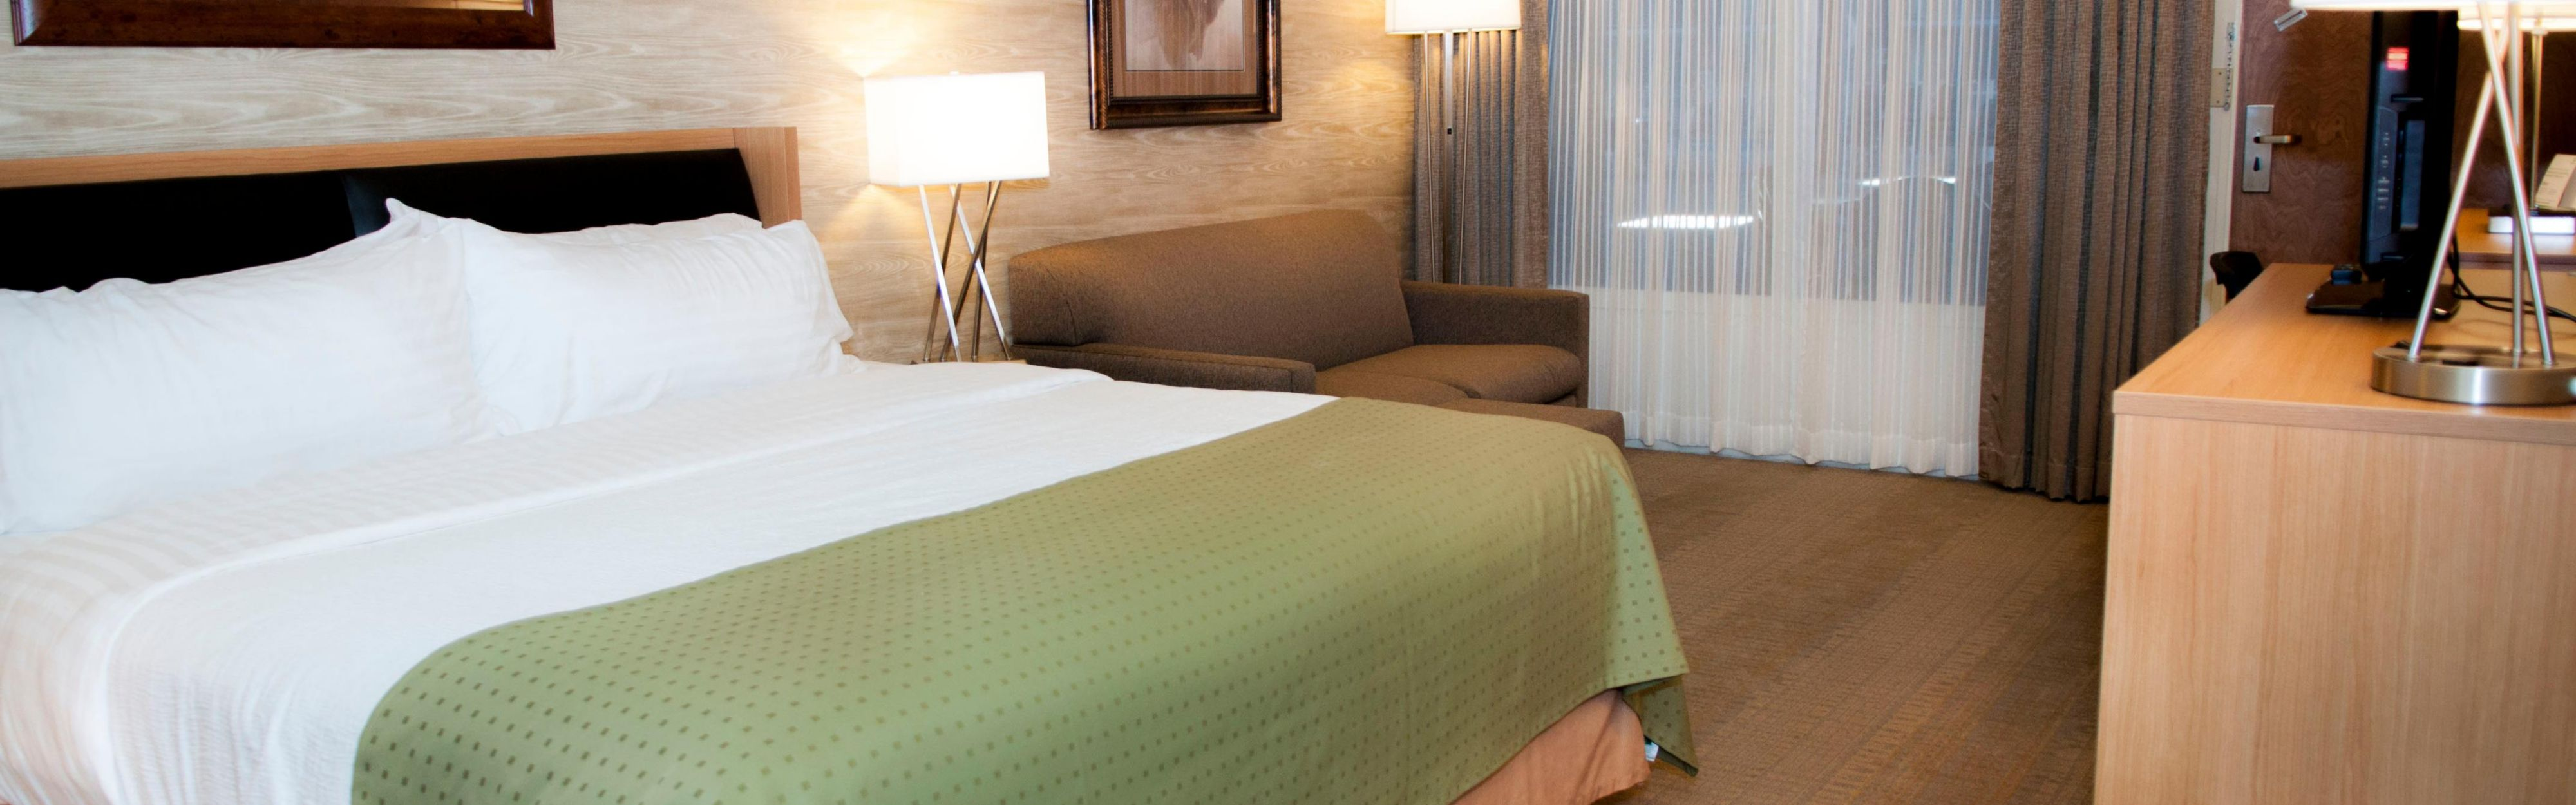 Holiday Inn Spearfish-Convention Center image 1